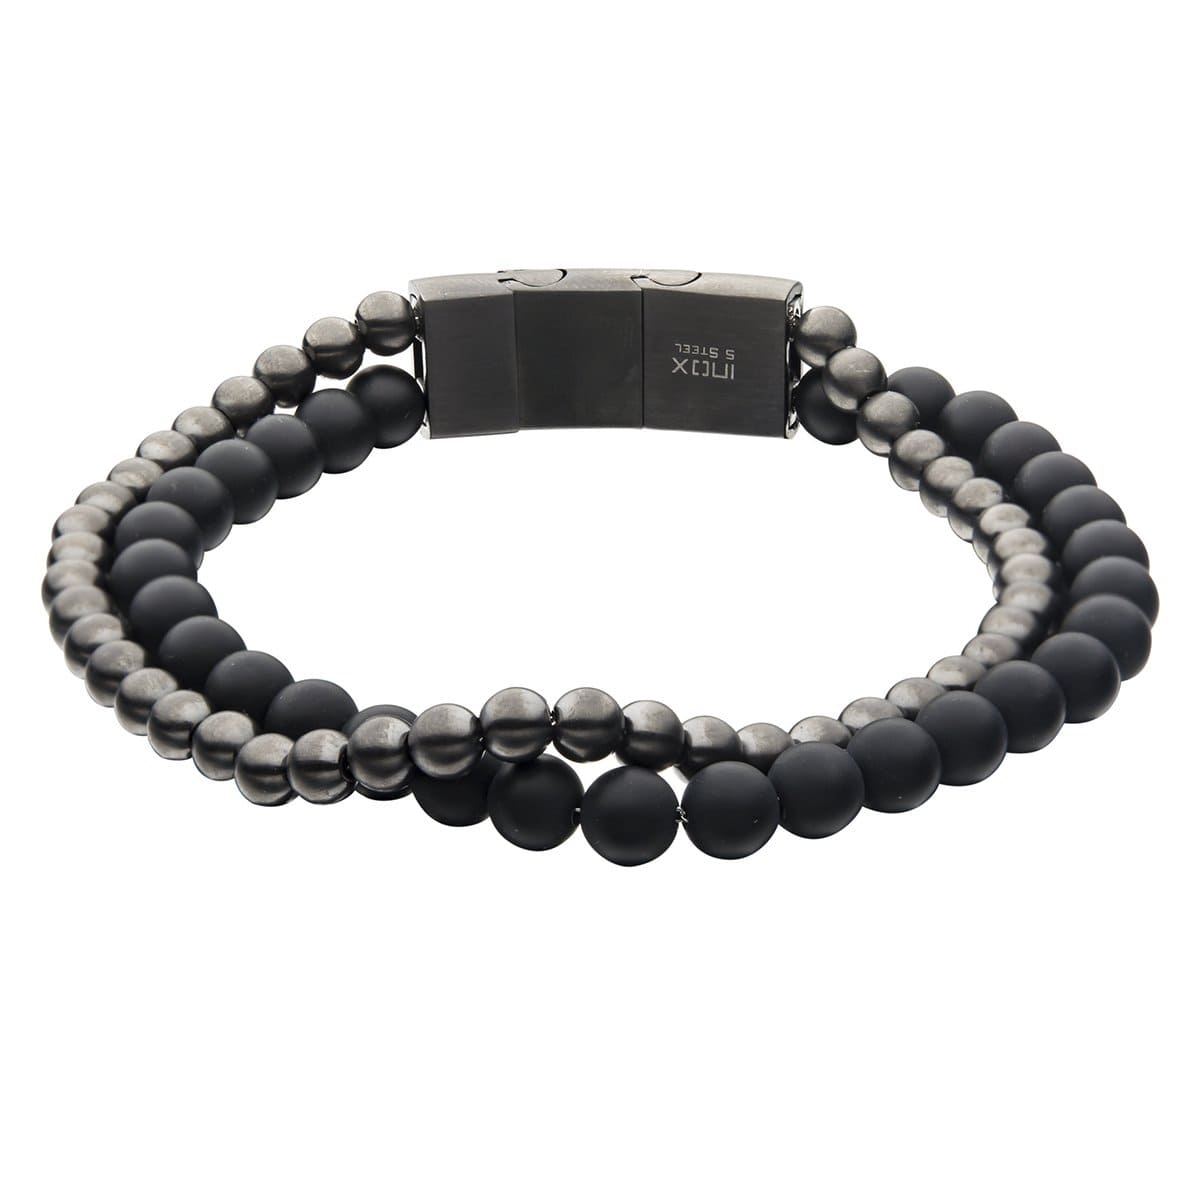 Silver Stainless Steel Oxidized Finish Gun Metal with Black Onyx Bead Intertwined Bracelet